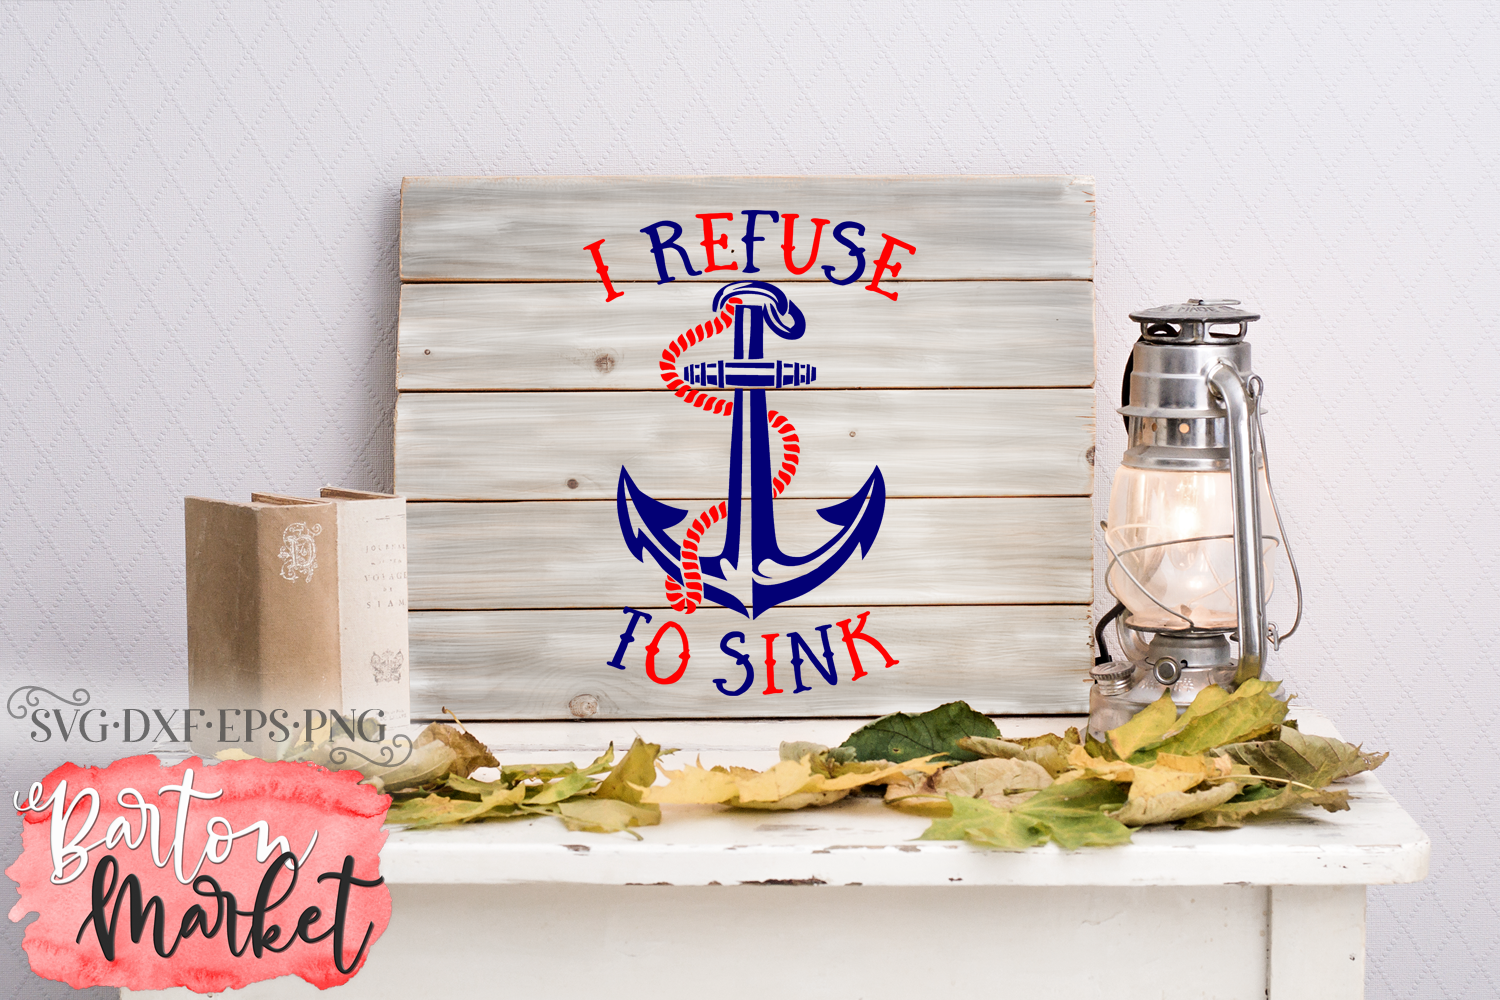 I Refuse To Sink SVG DXF EPS PNG example image 1